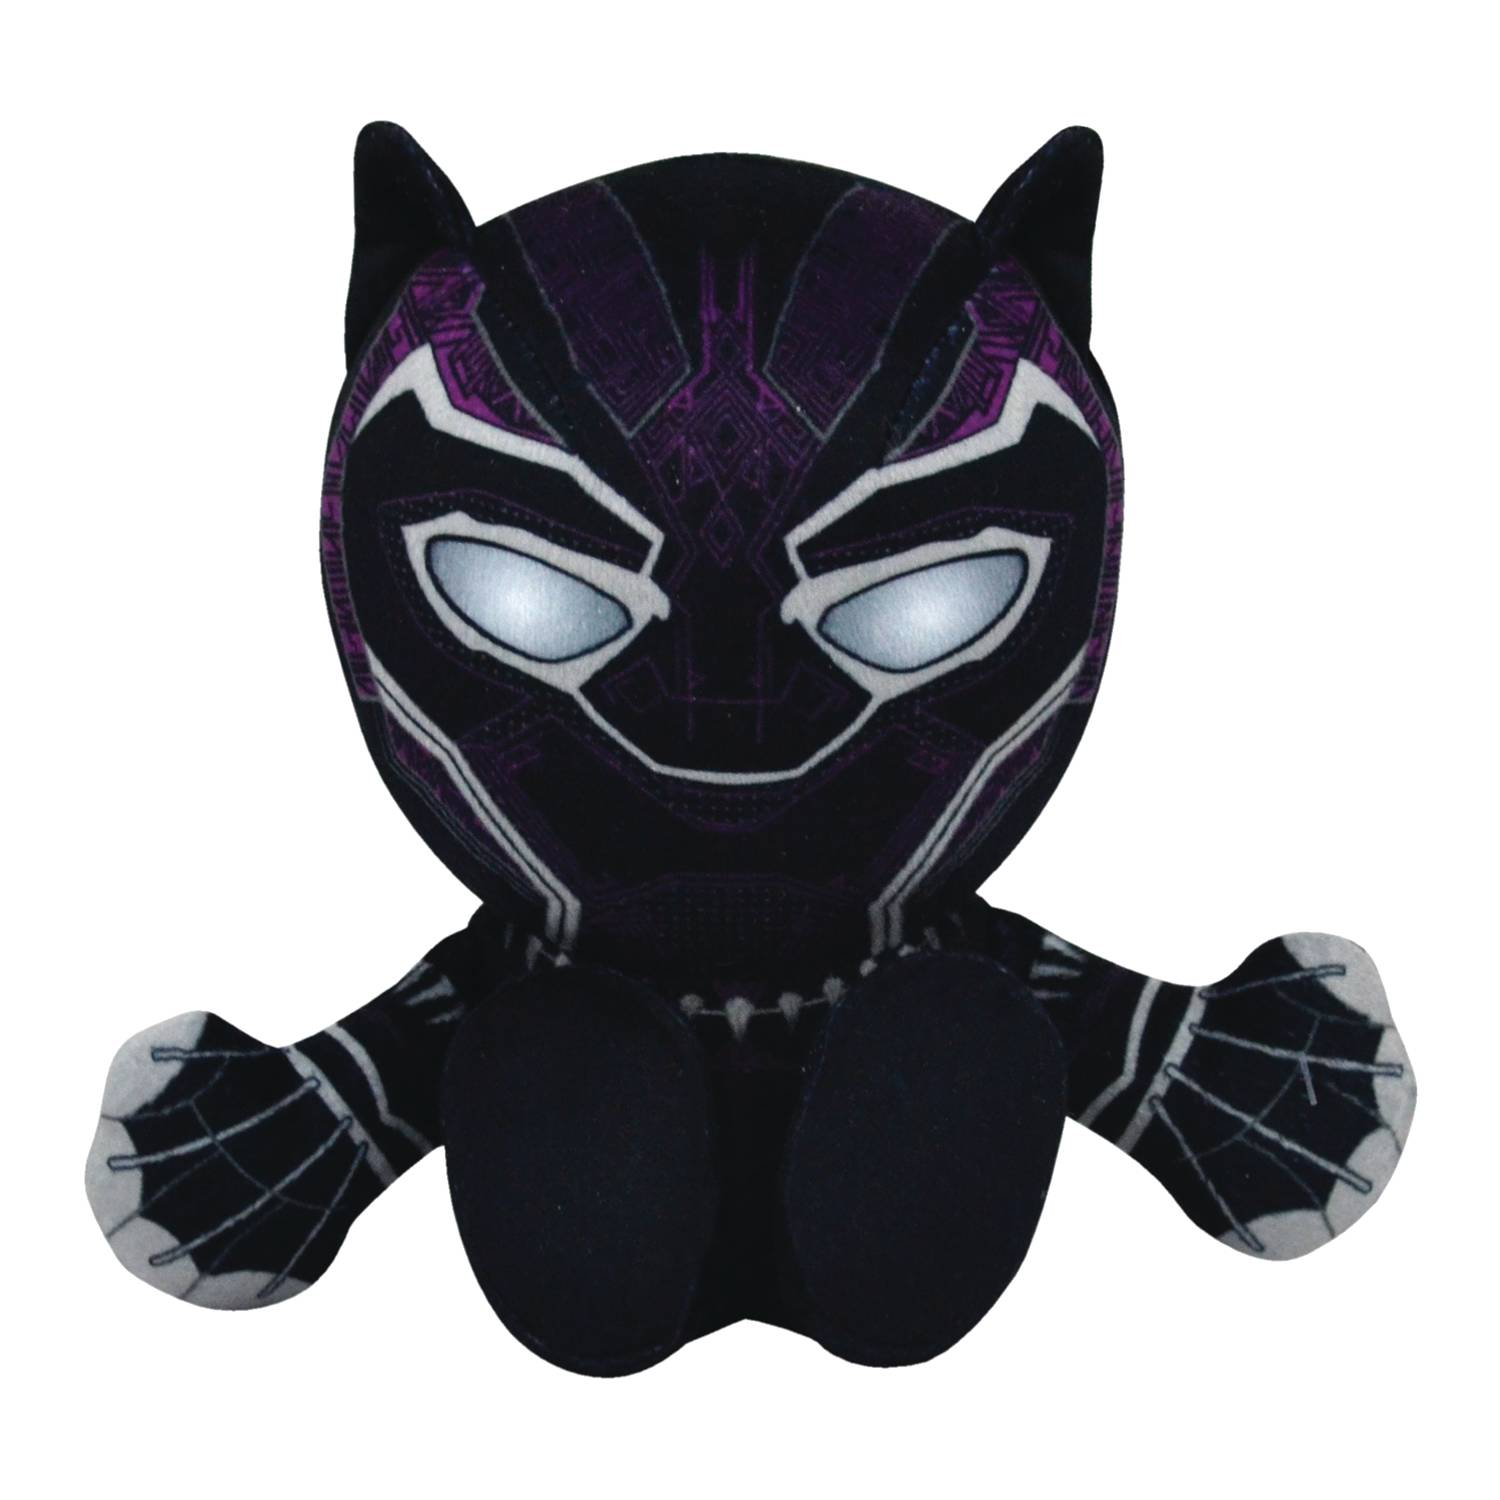 MARVEL BLACK PANTHER 8IN KURICHA SITTING PLUSH FIGURE